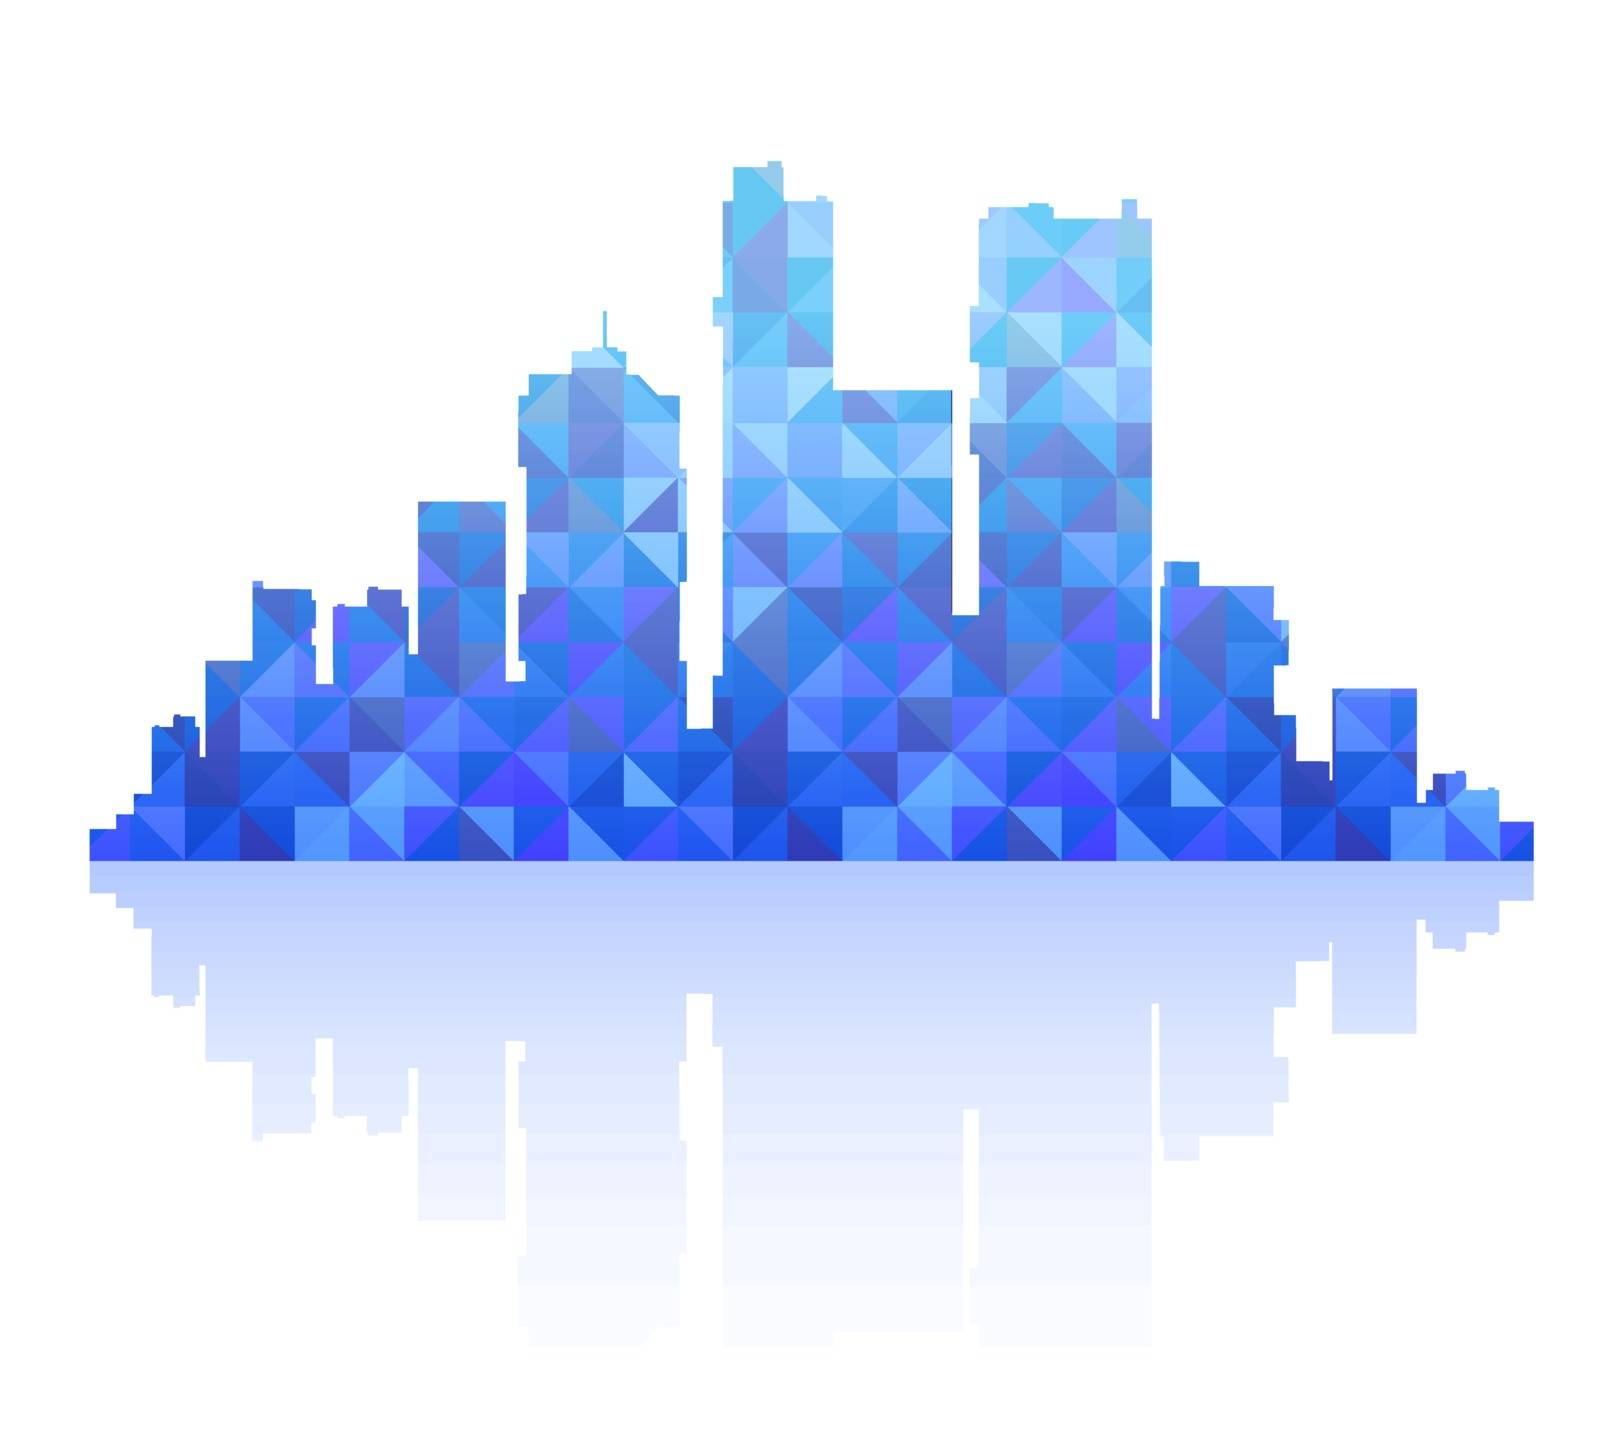 Silhouette of a city landscape with skyscrapers and city buildings